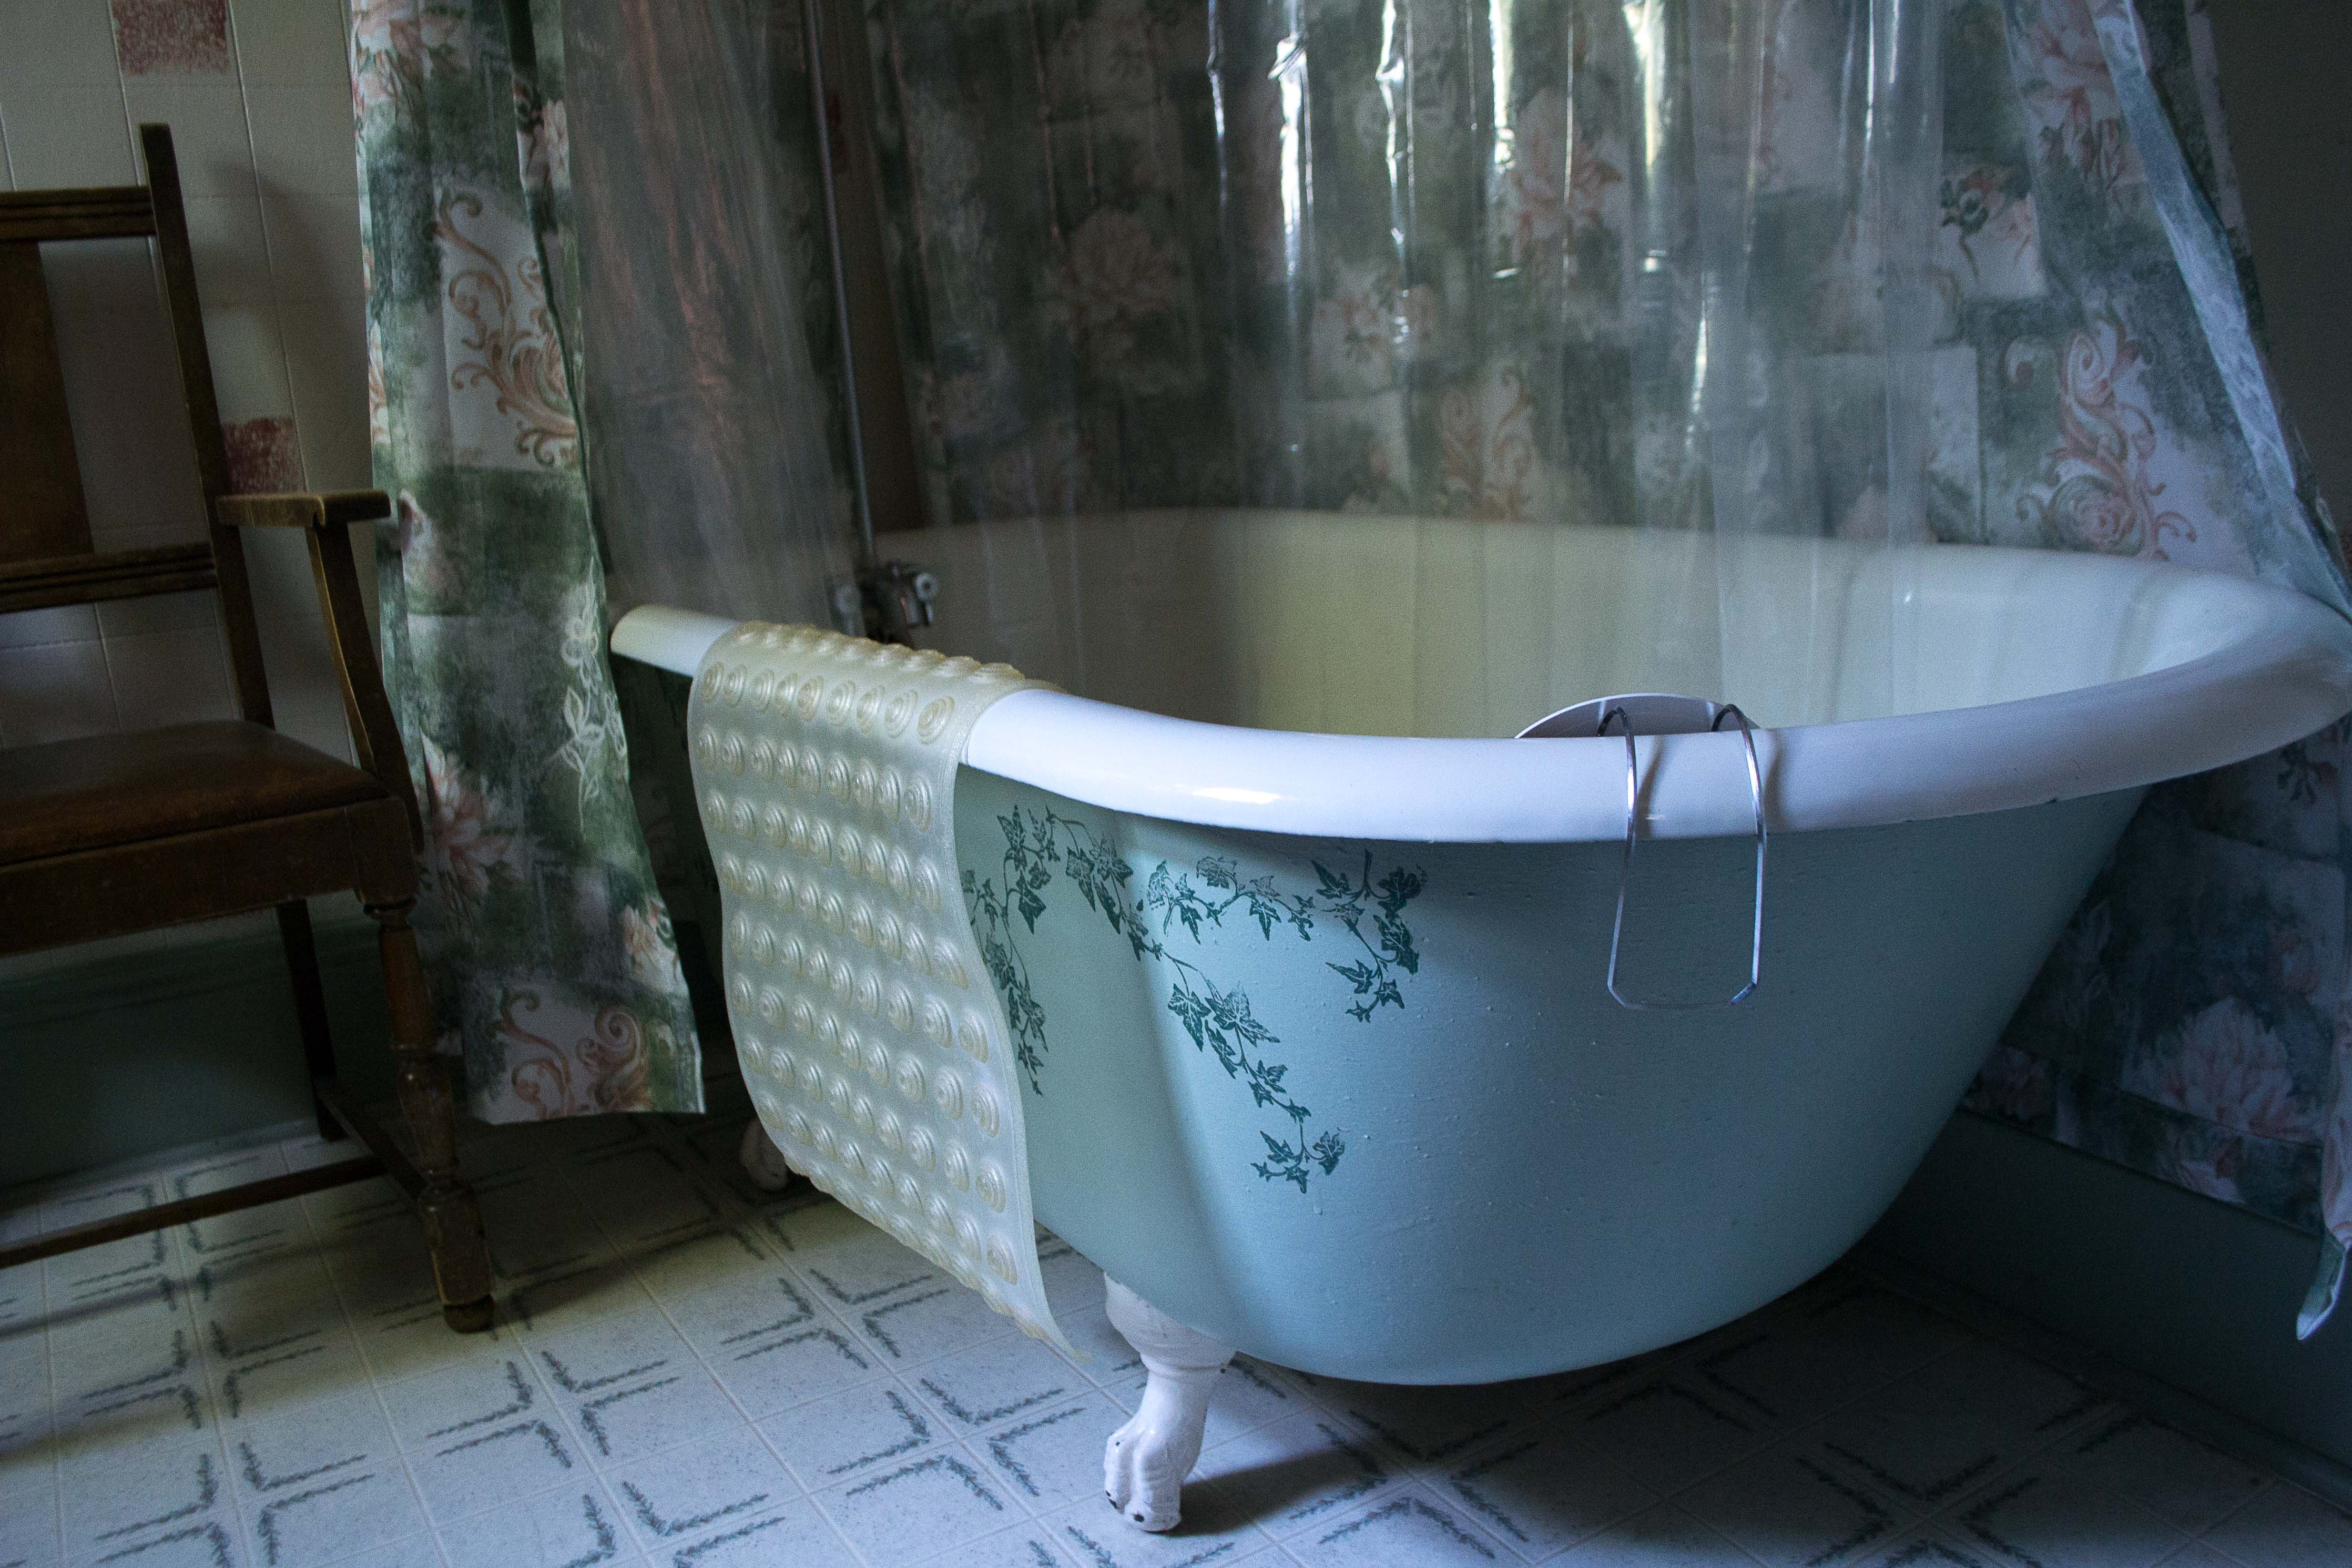 File:Bathtub-1.jpg - Wikimedia Commons